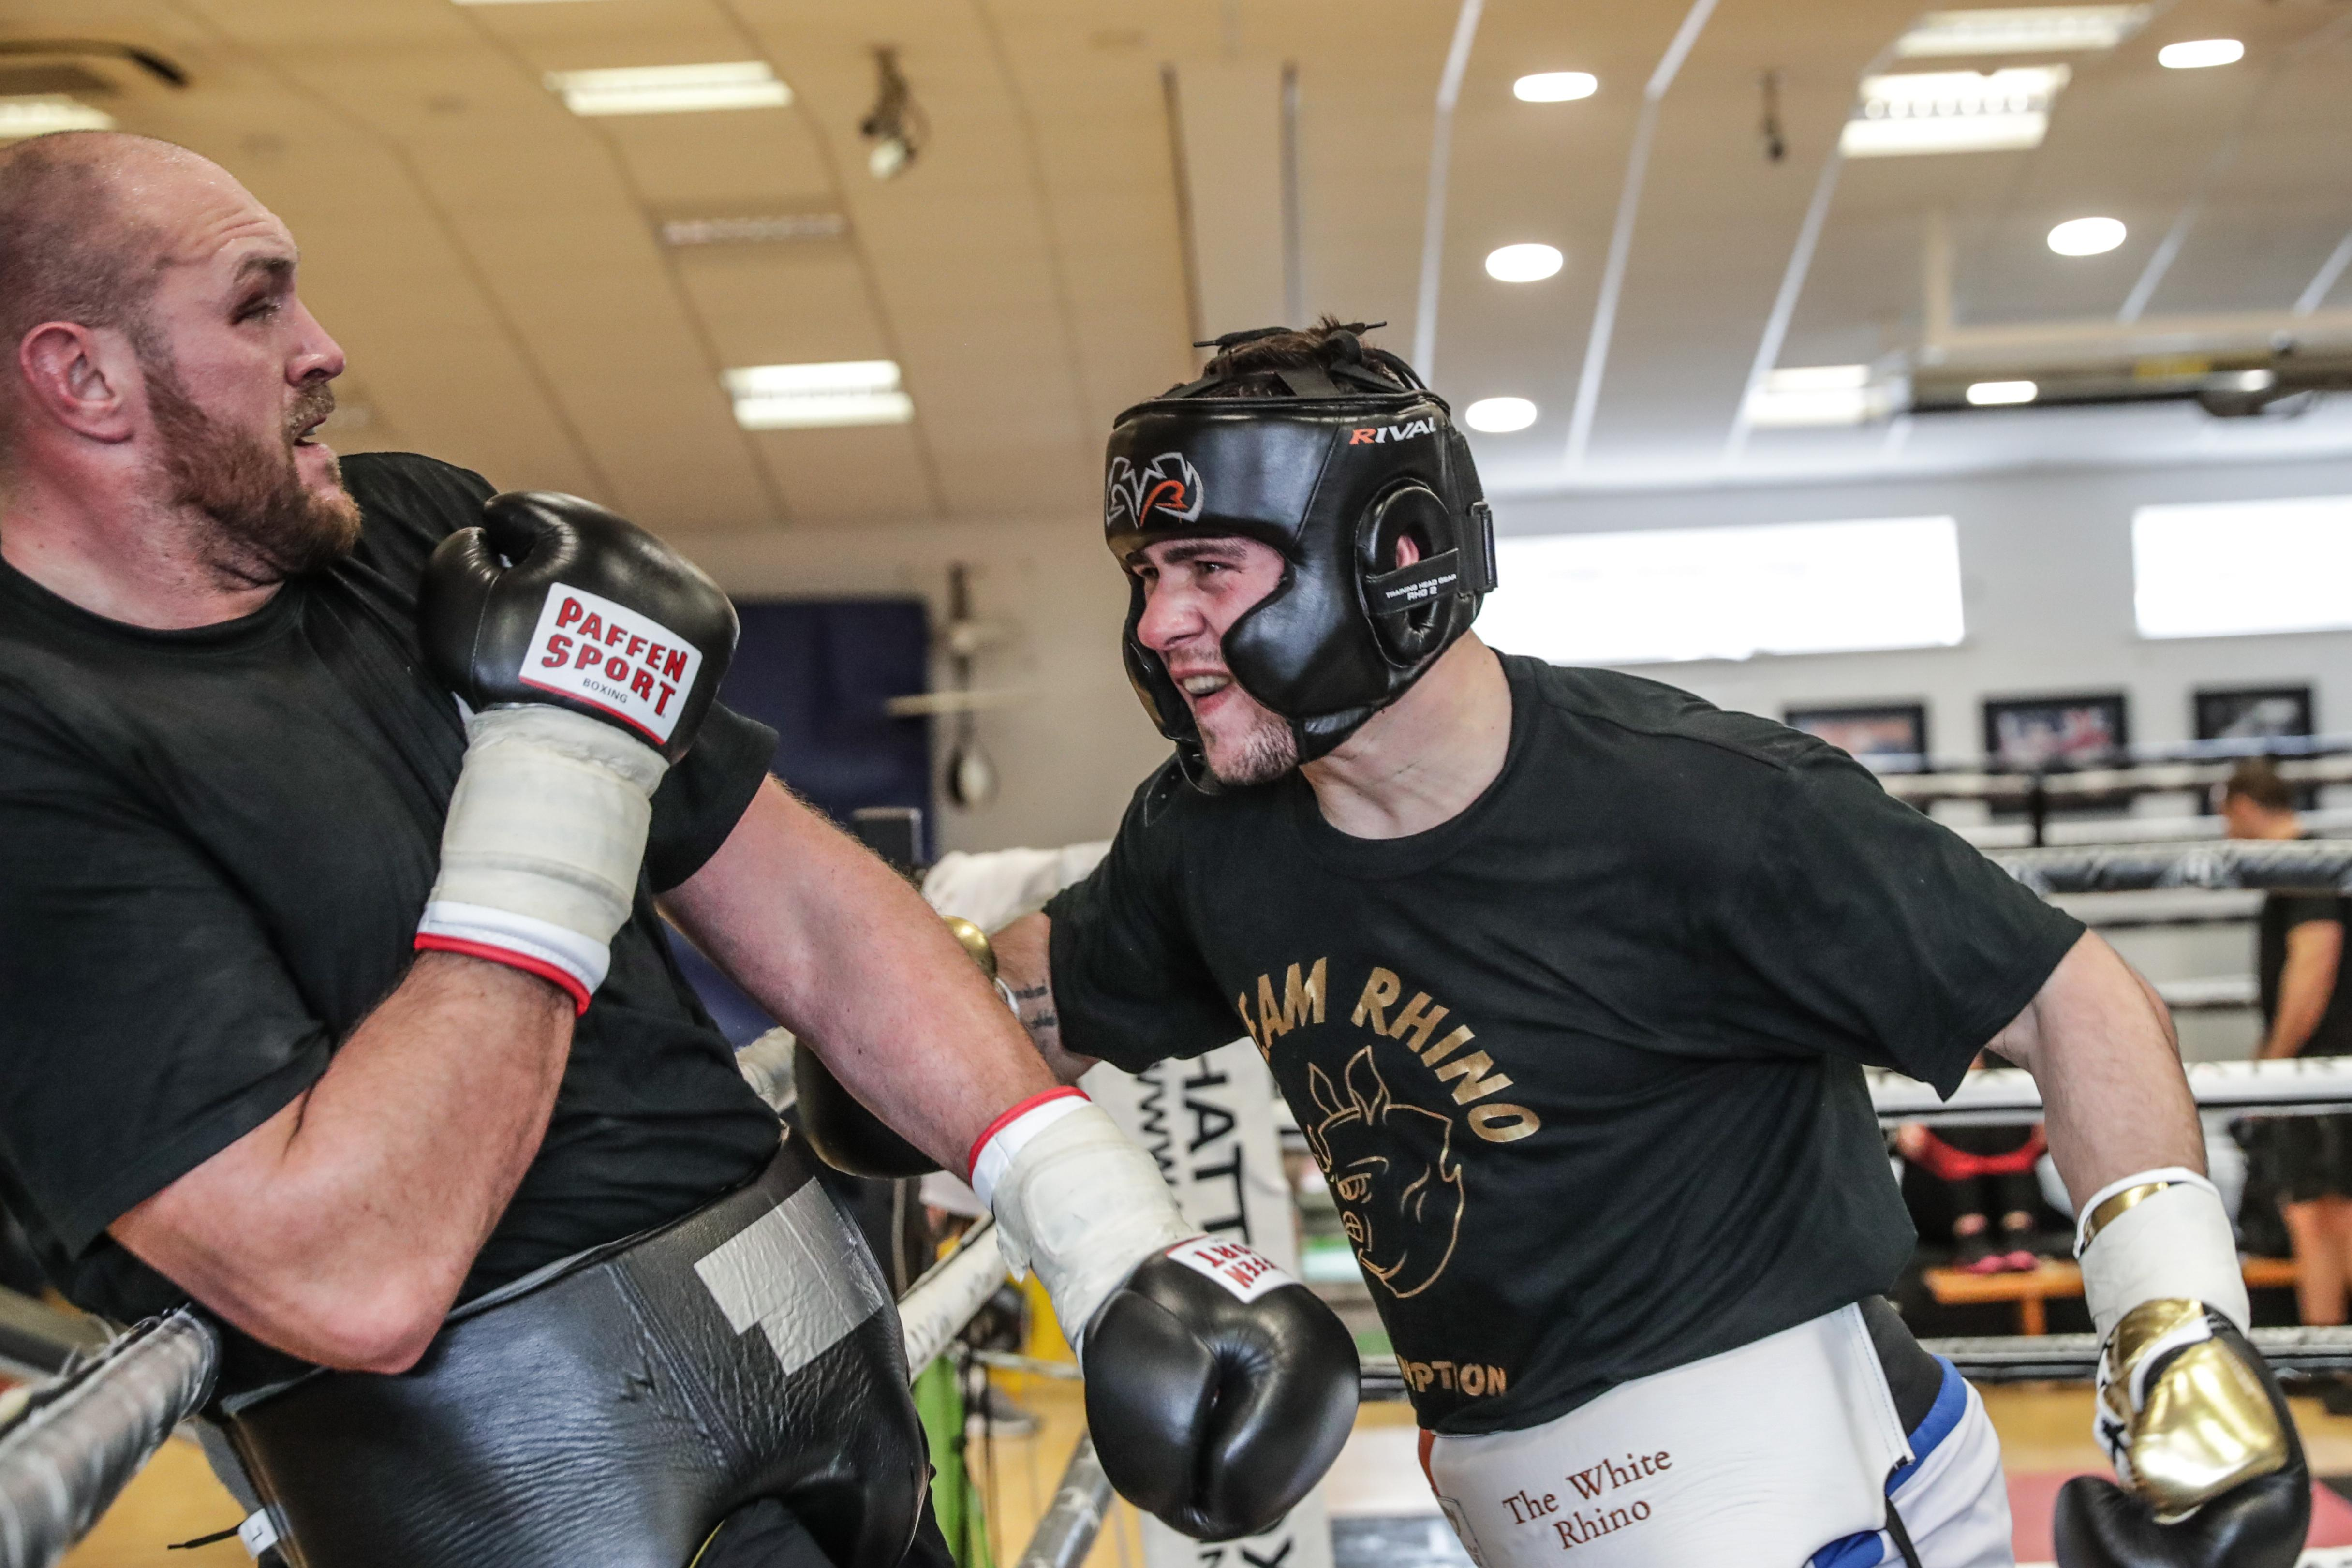 The Gypsy King has to show some of those legendary defensive skills against rampaging White Rhino David Allen